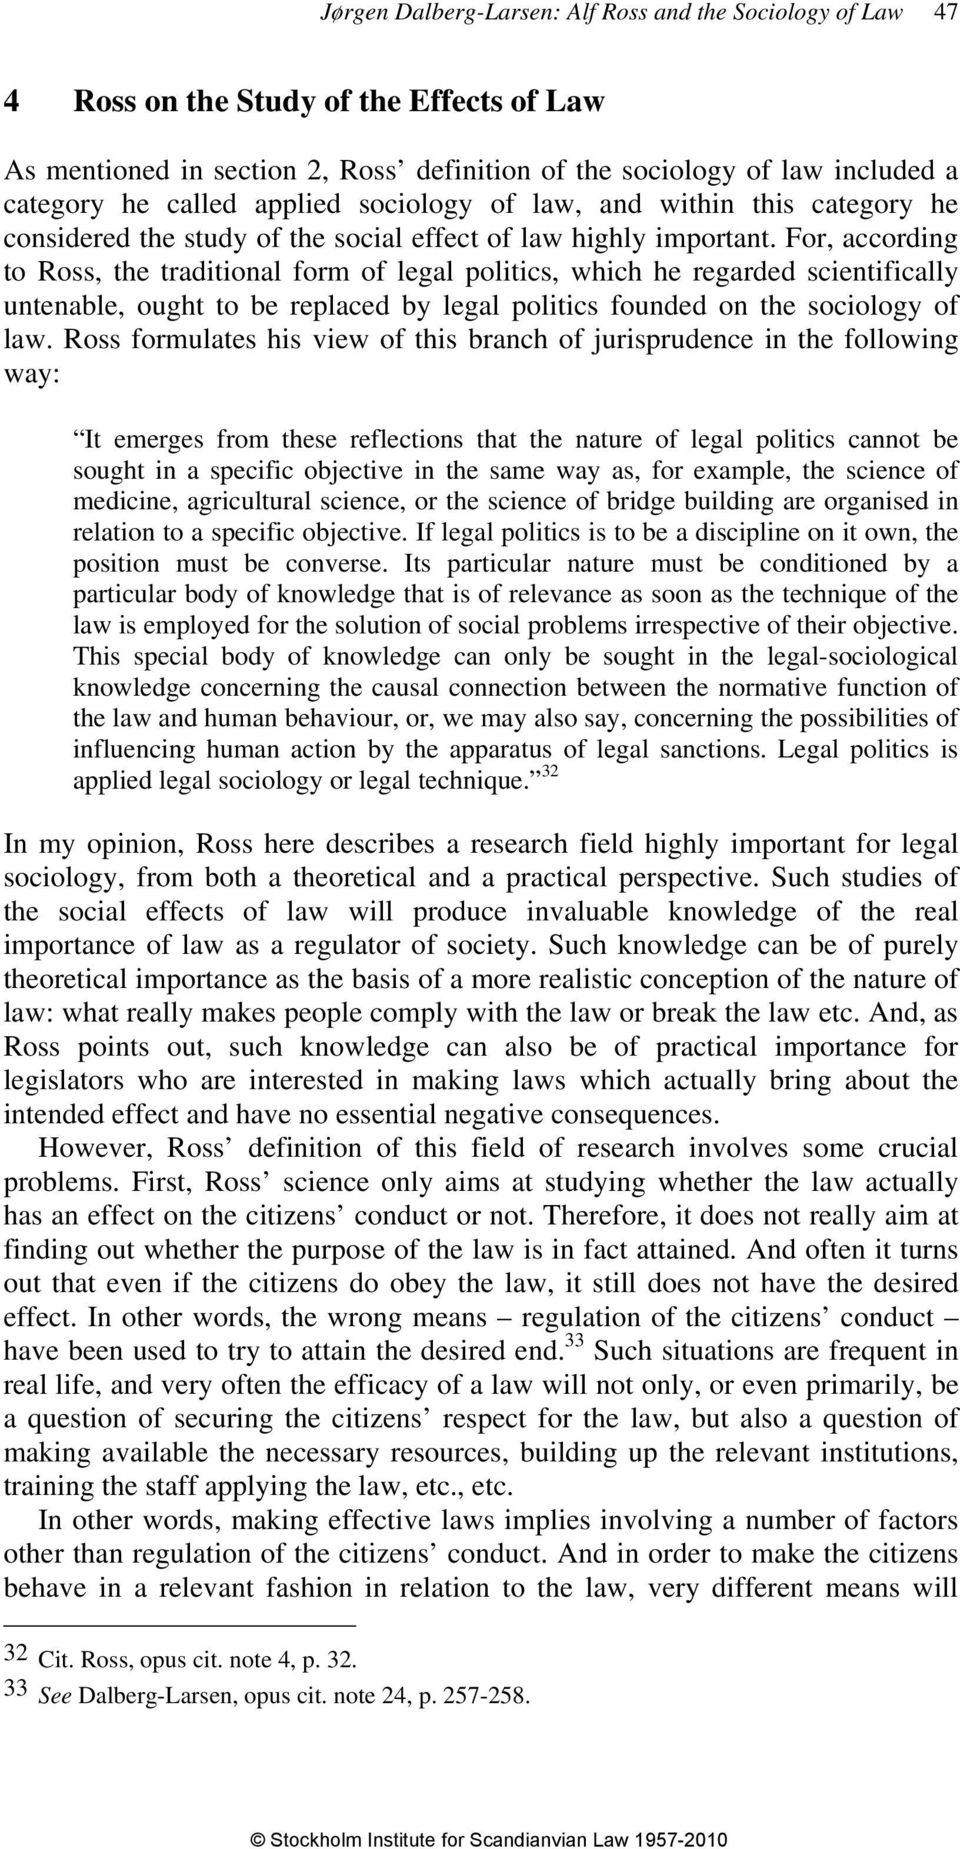 For, according to Ross, the traditional form of legal politics, which he regarded scientifically untenable, ought to be replaced by legal politics founded on the sociology of law.